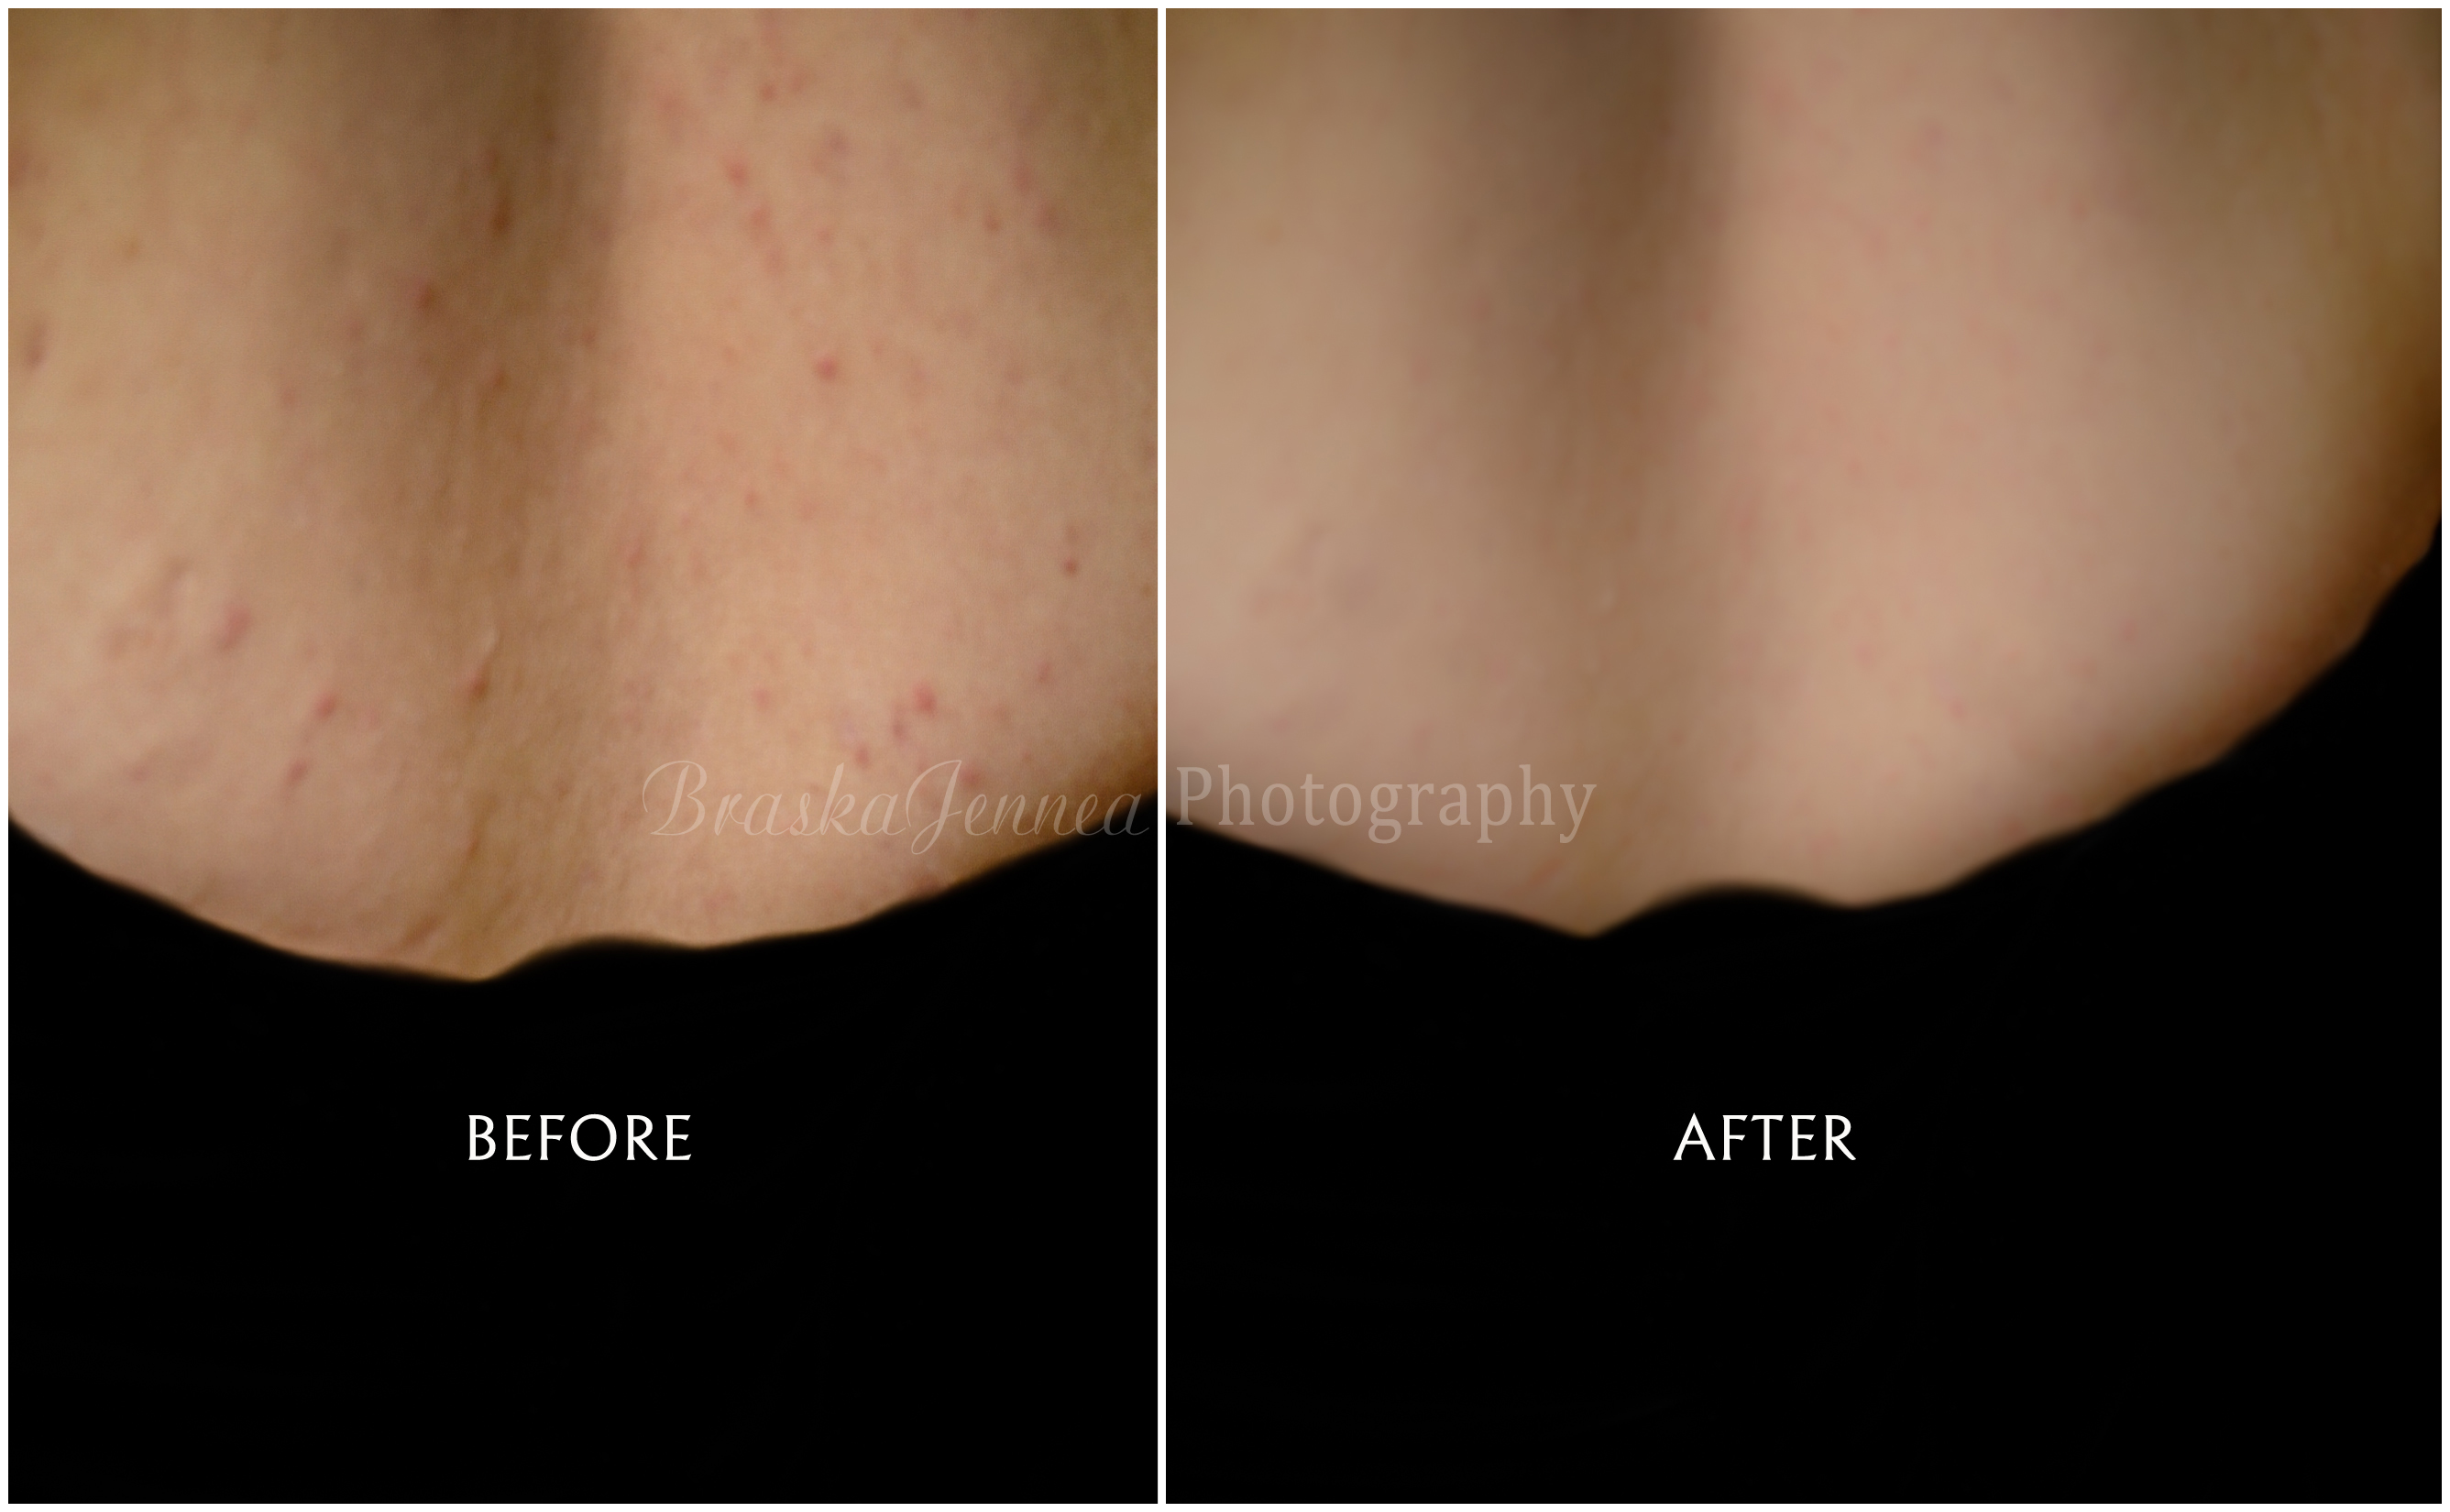 Edit skin before n after wm braskajennea photography for How to get my photographs published